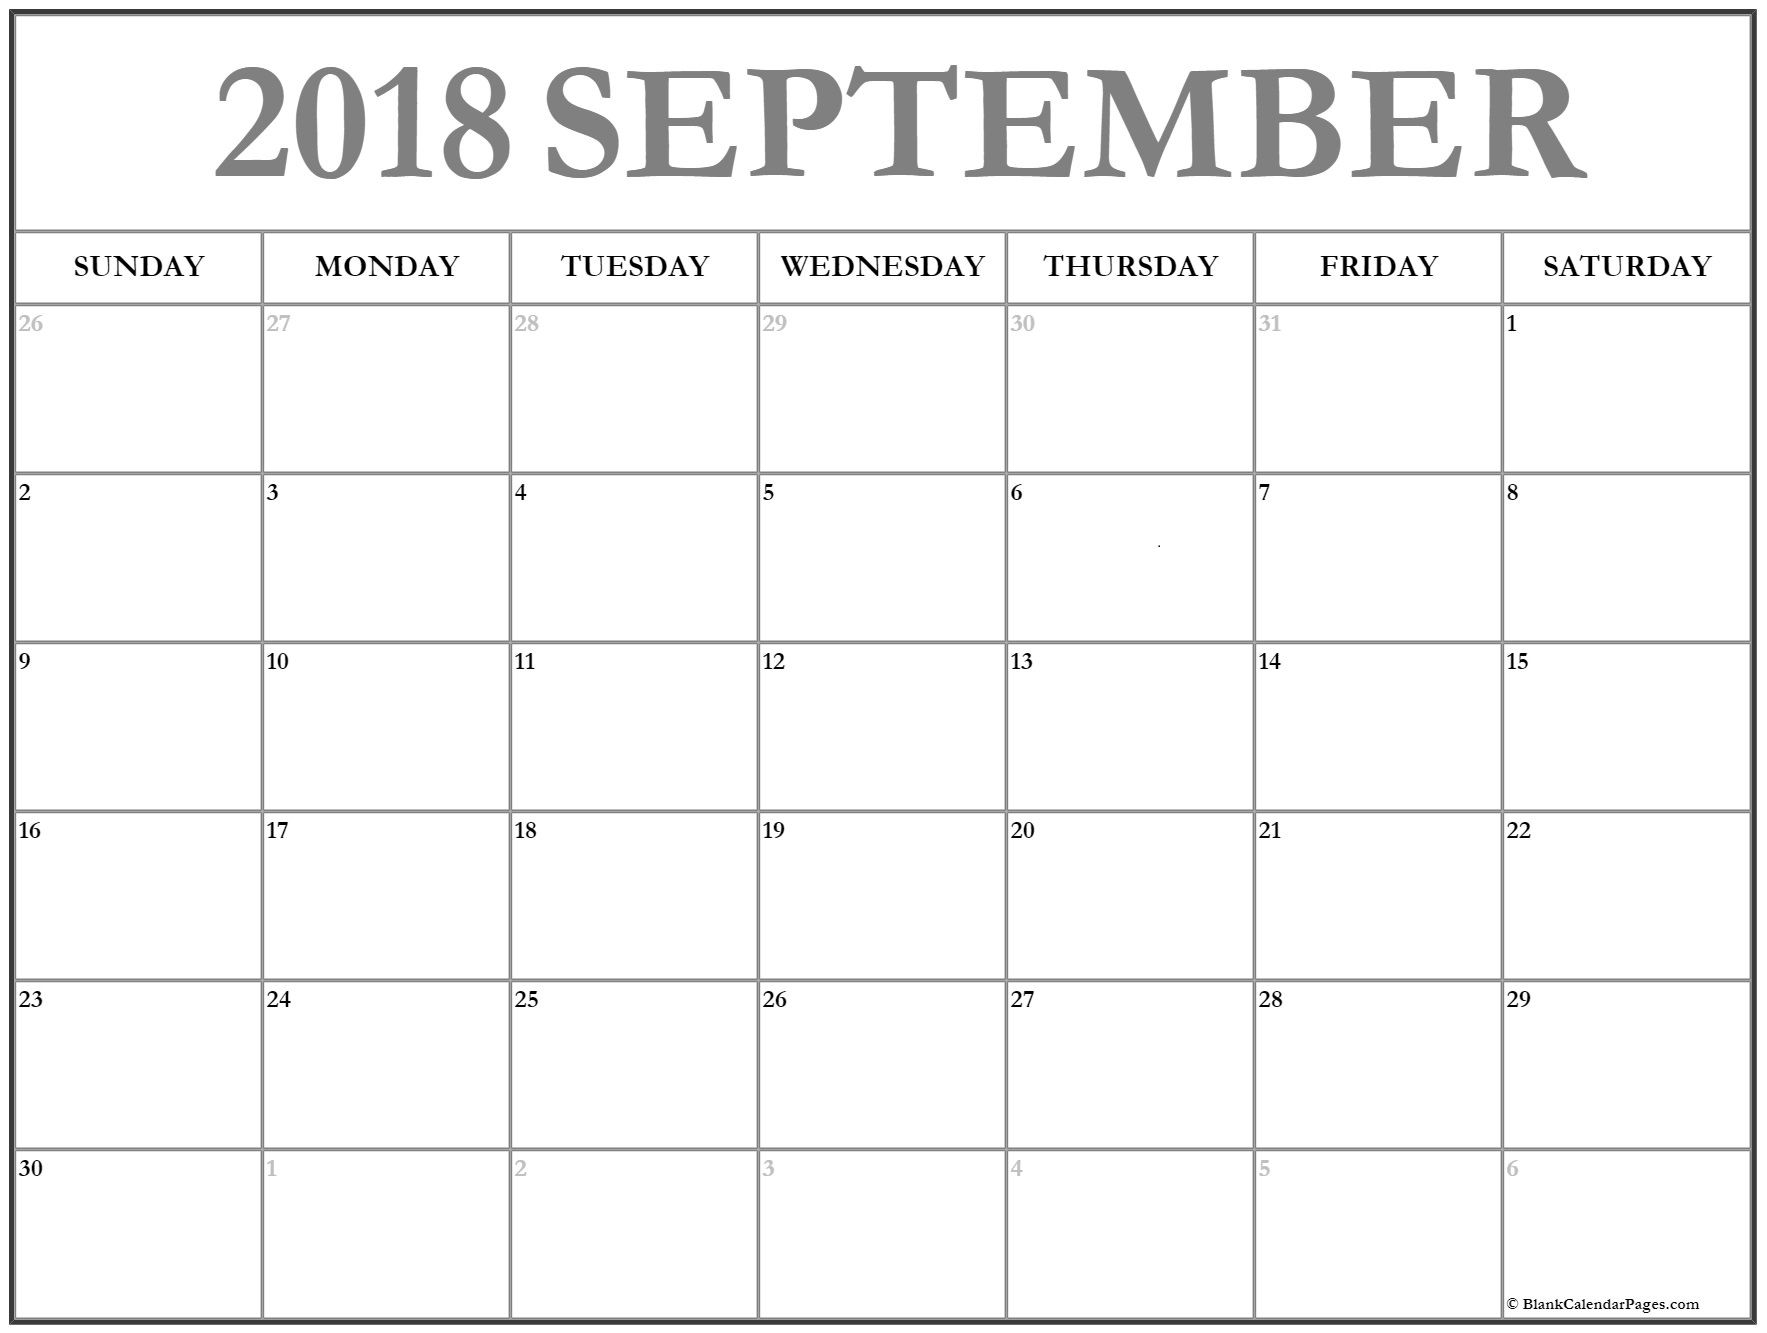 September 2018 Blank Calendar Printable Template Calendar Printables Monthly Calendar Printable Calendar March